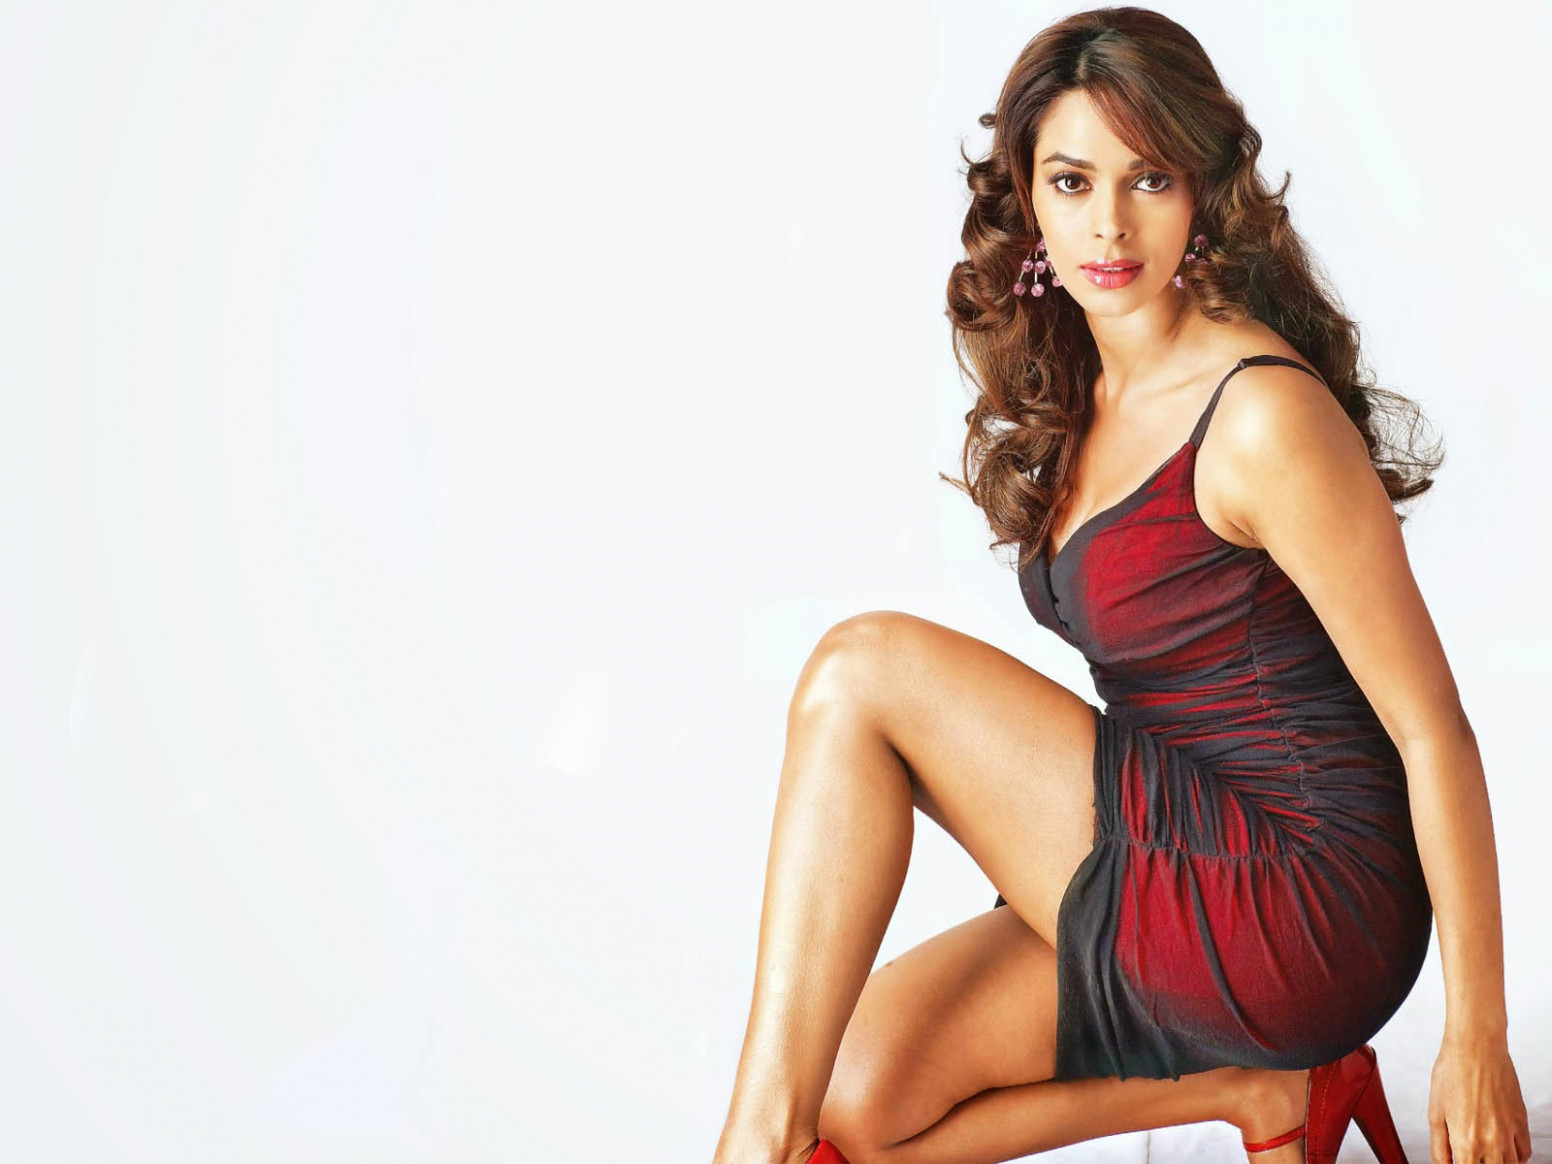 Bollywood Babe Mallika Sherawats Hot Photo Gallery and ...